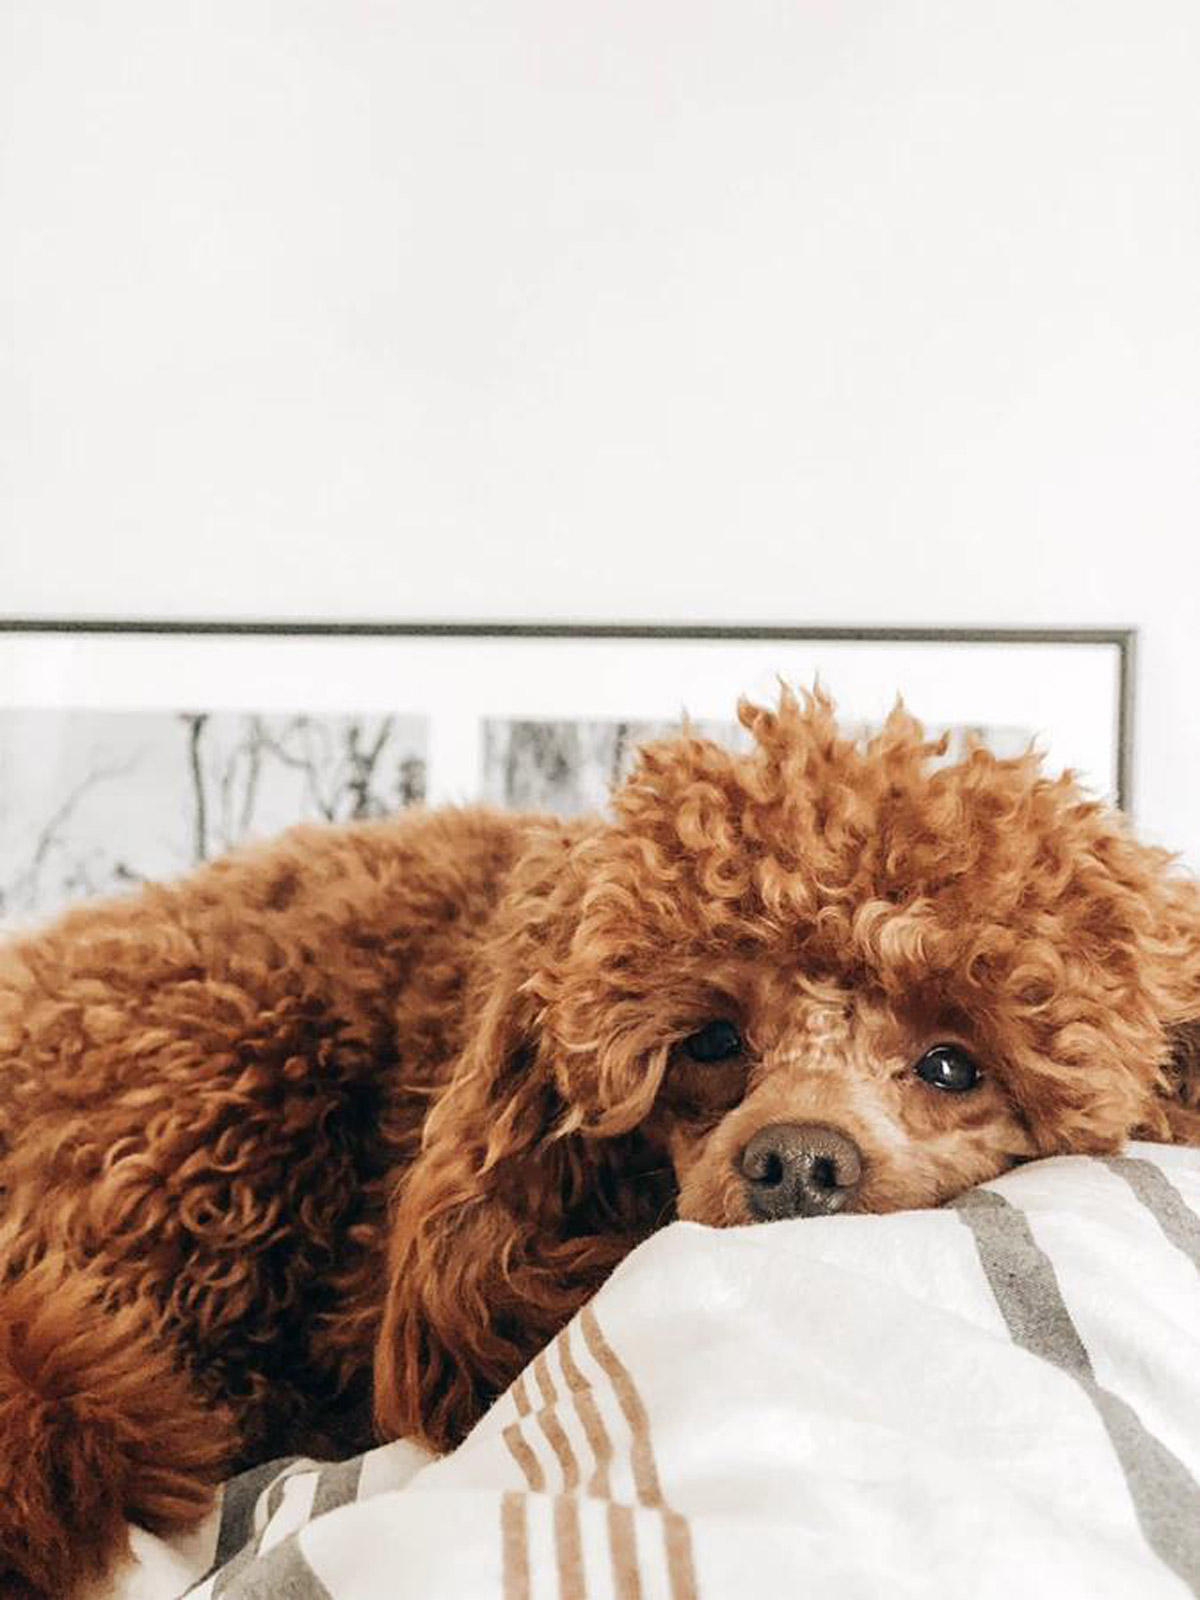 7 Dog Breeds Best for Families with Kids